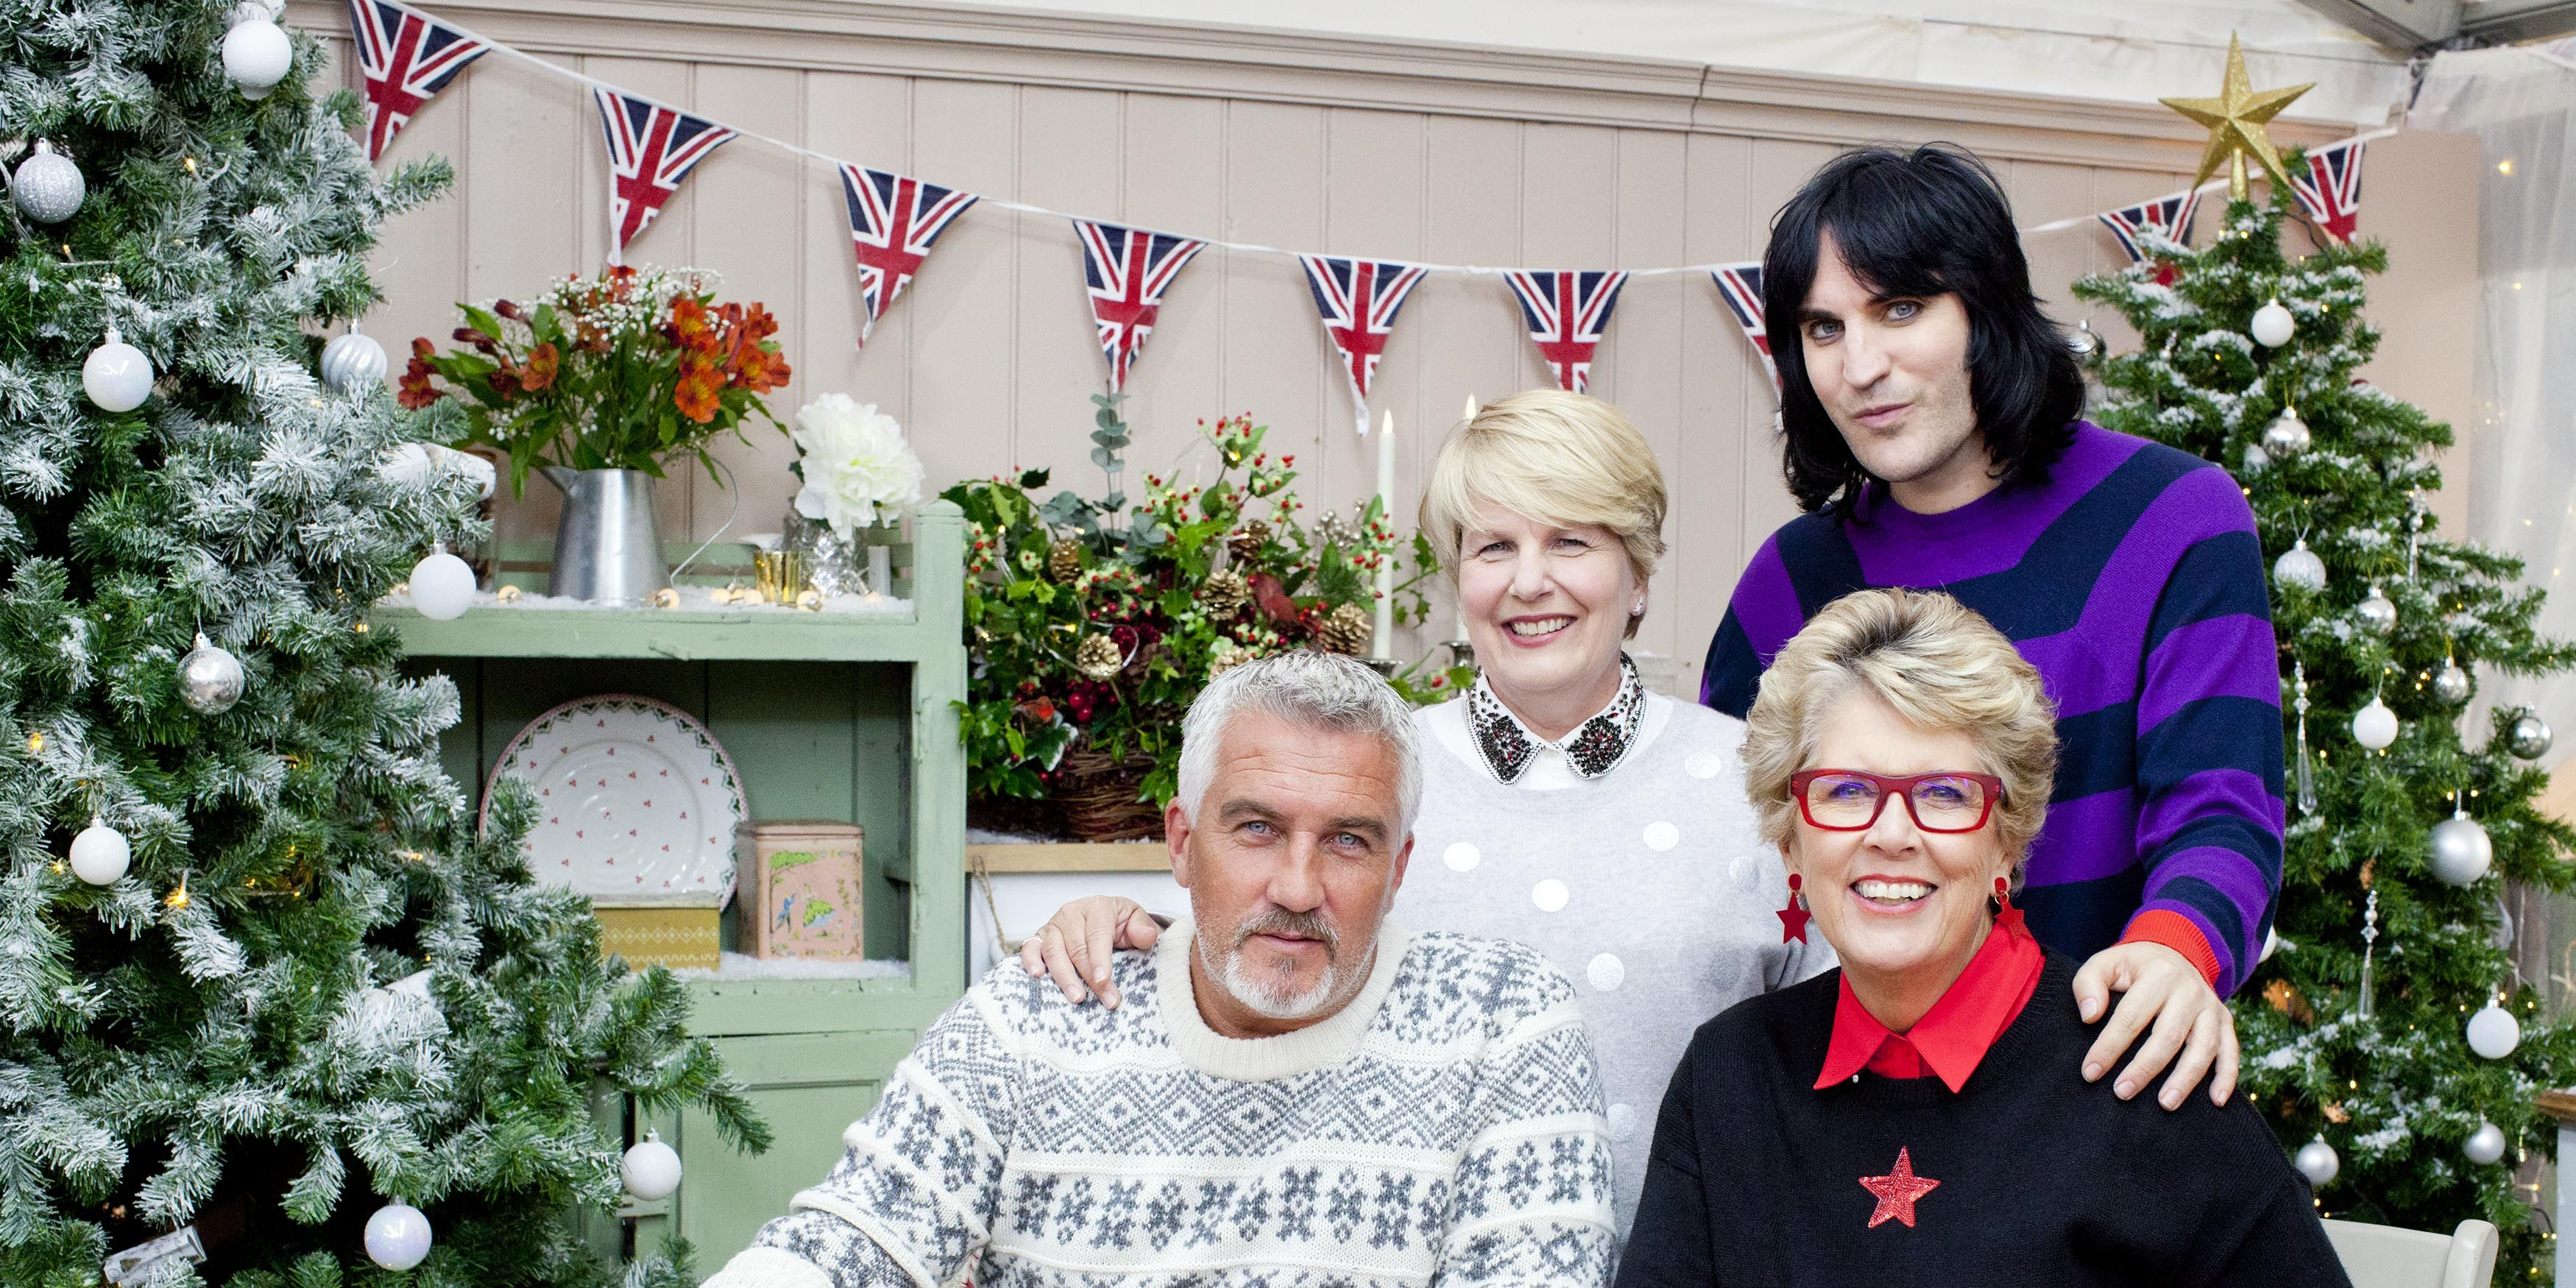 'The Great Festive Bake Off'